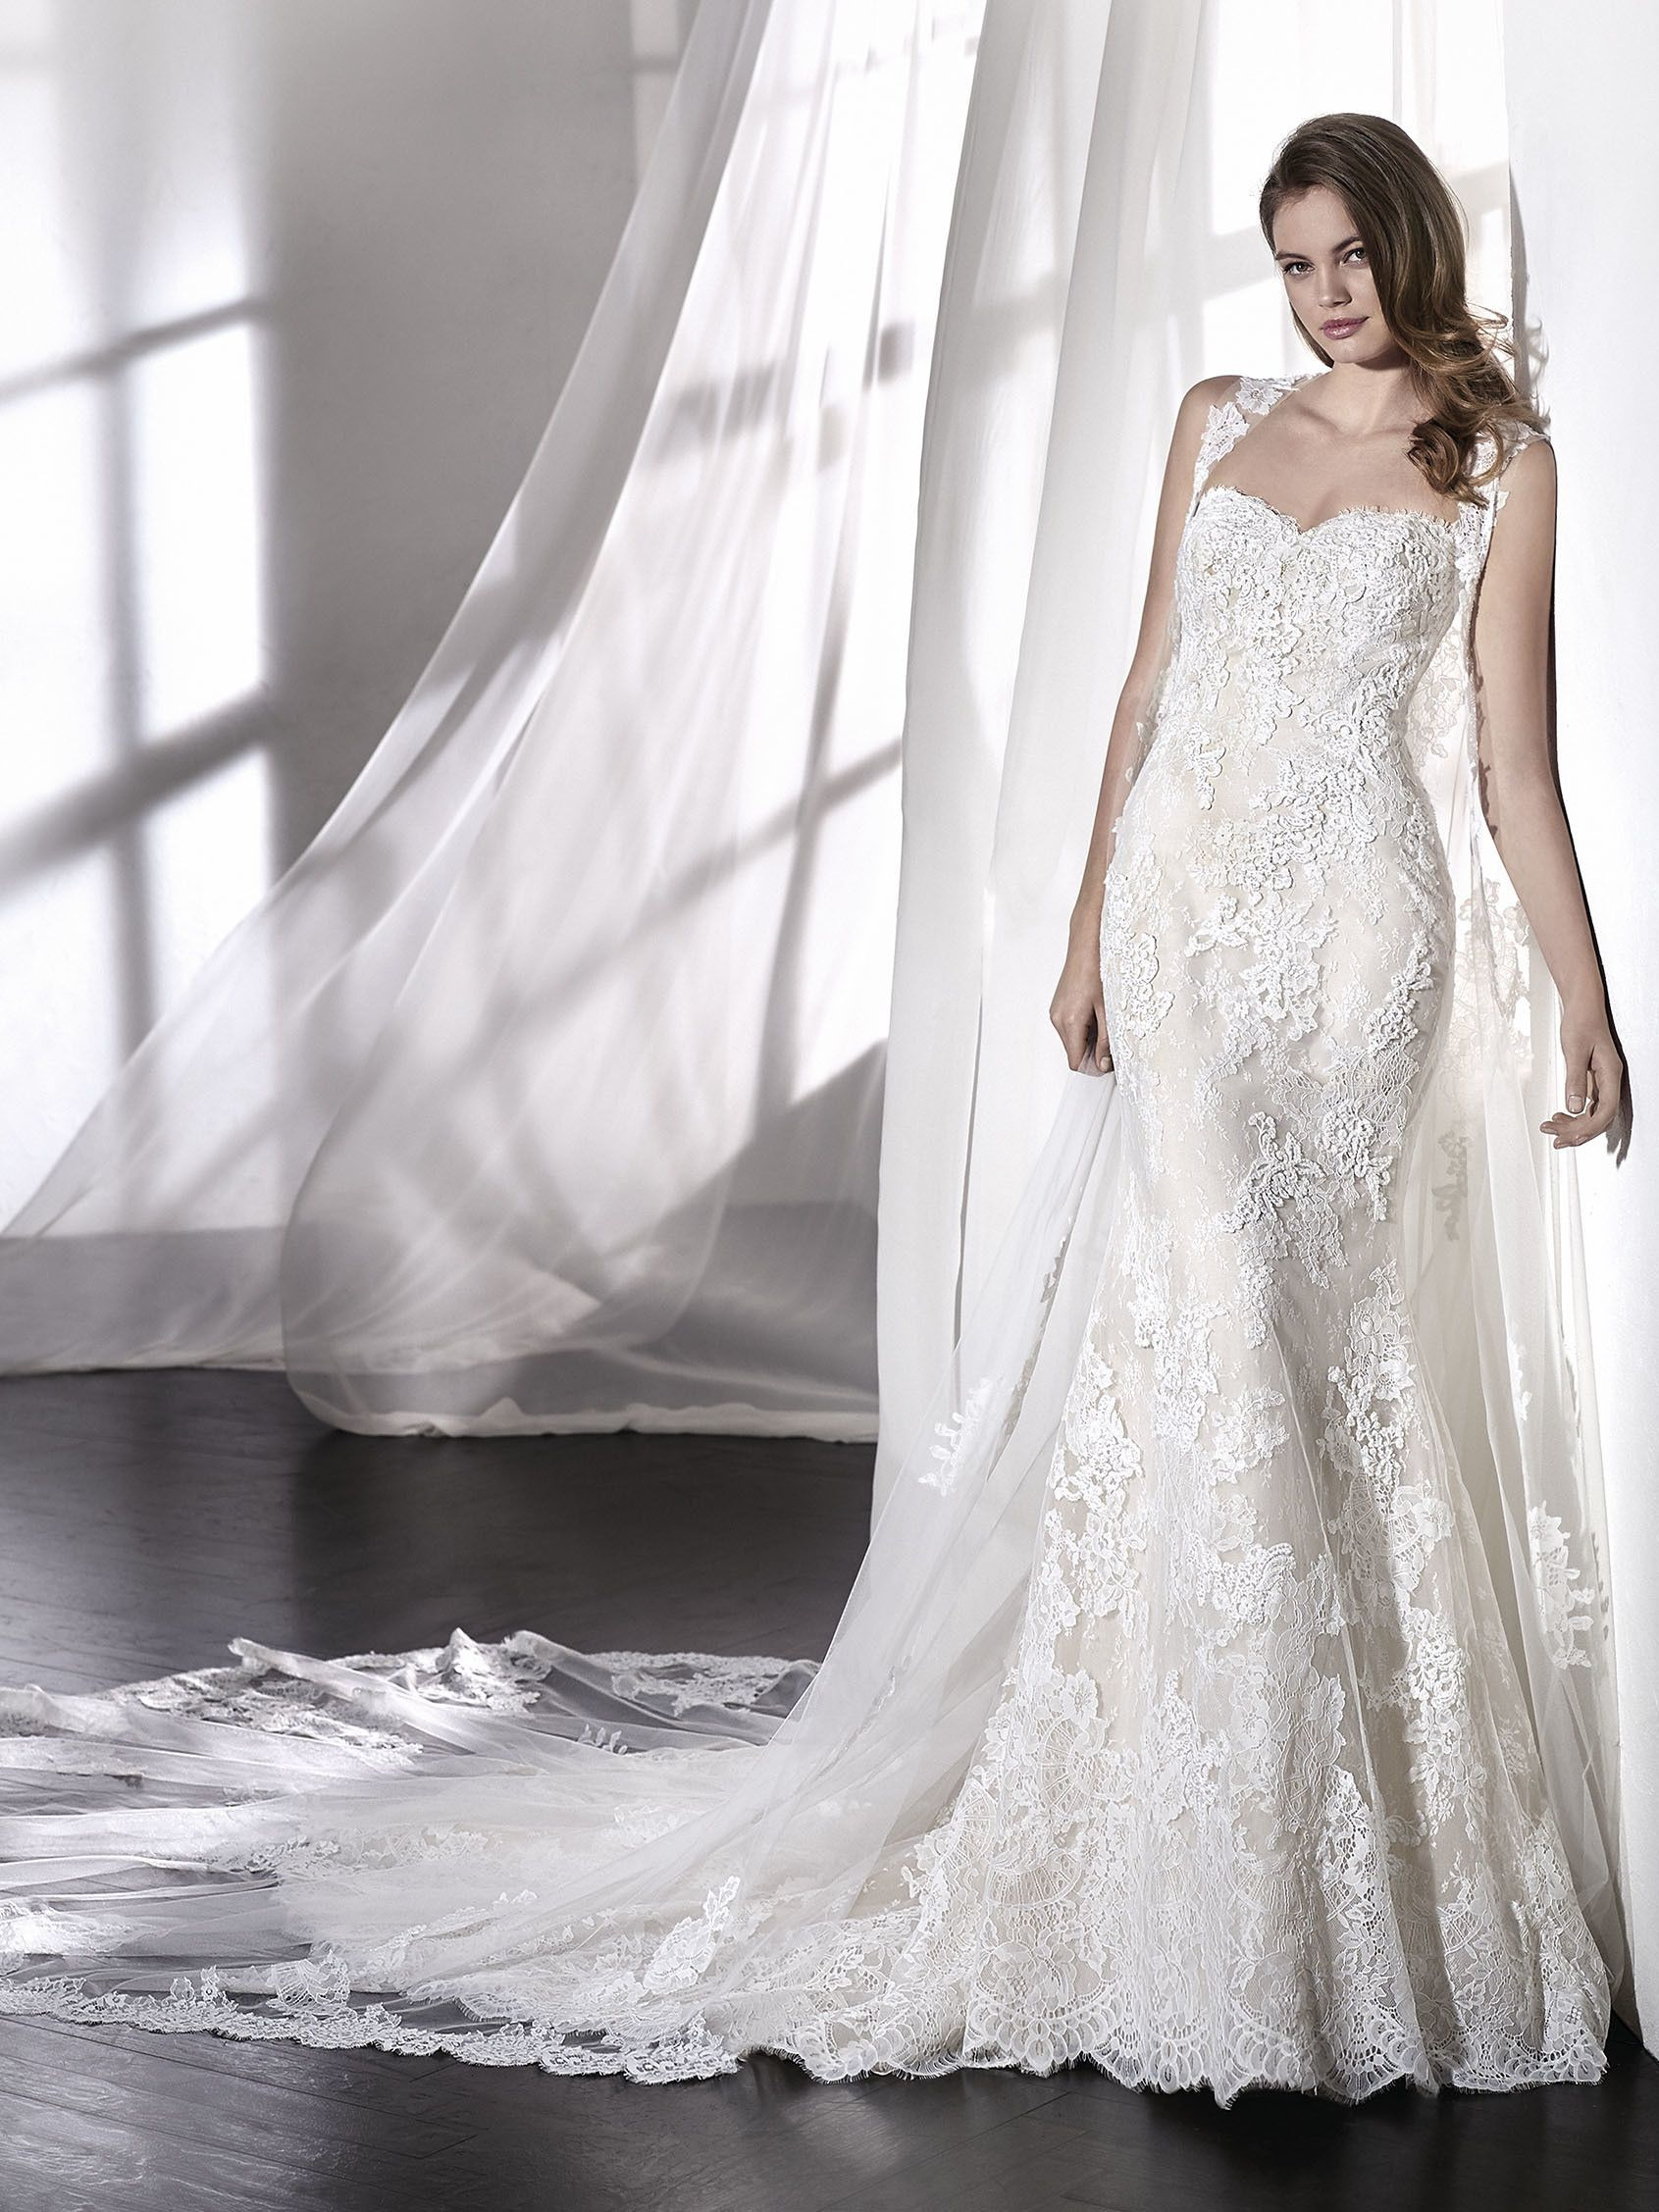 LESLEY sweetheart neckline wedding dress | k | Pinterest